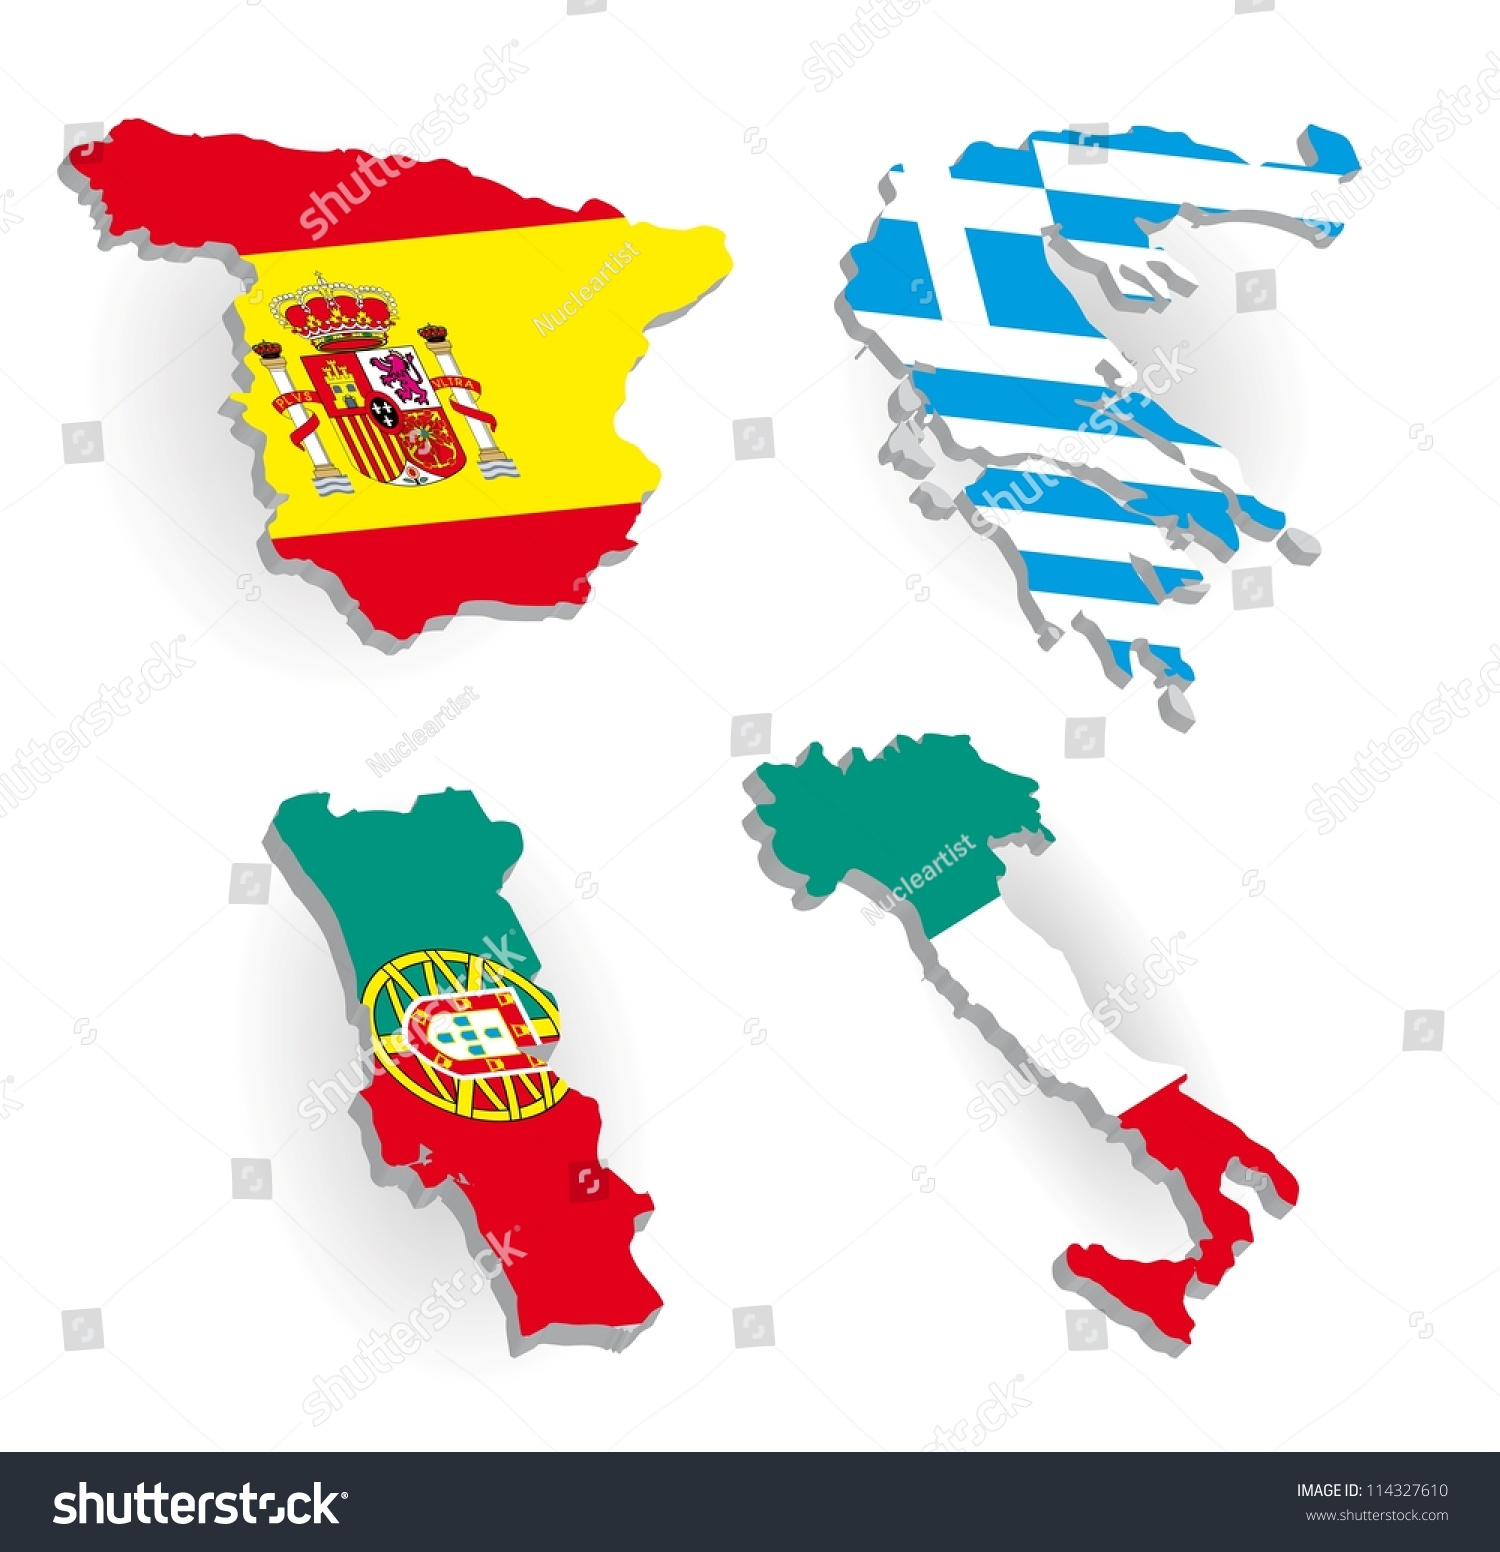 Greece Spain Portugal Italy Country Maps Stock Vector (Royalty Free ...